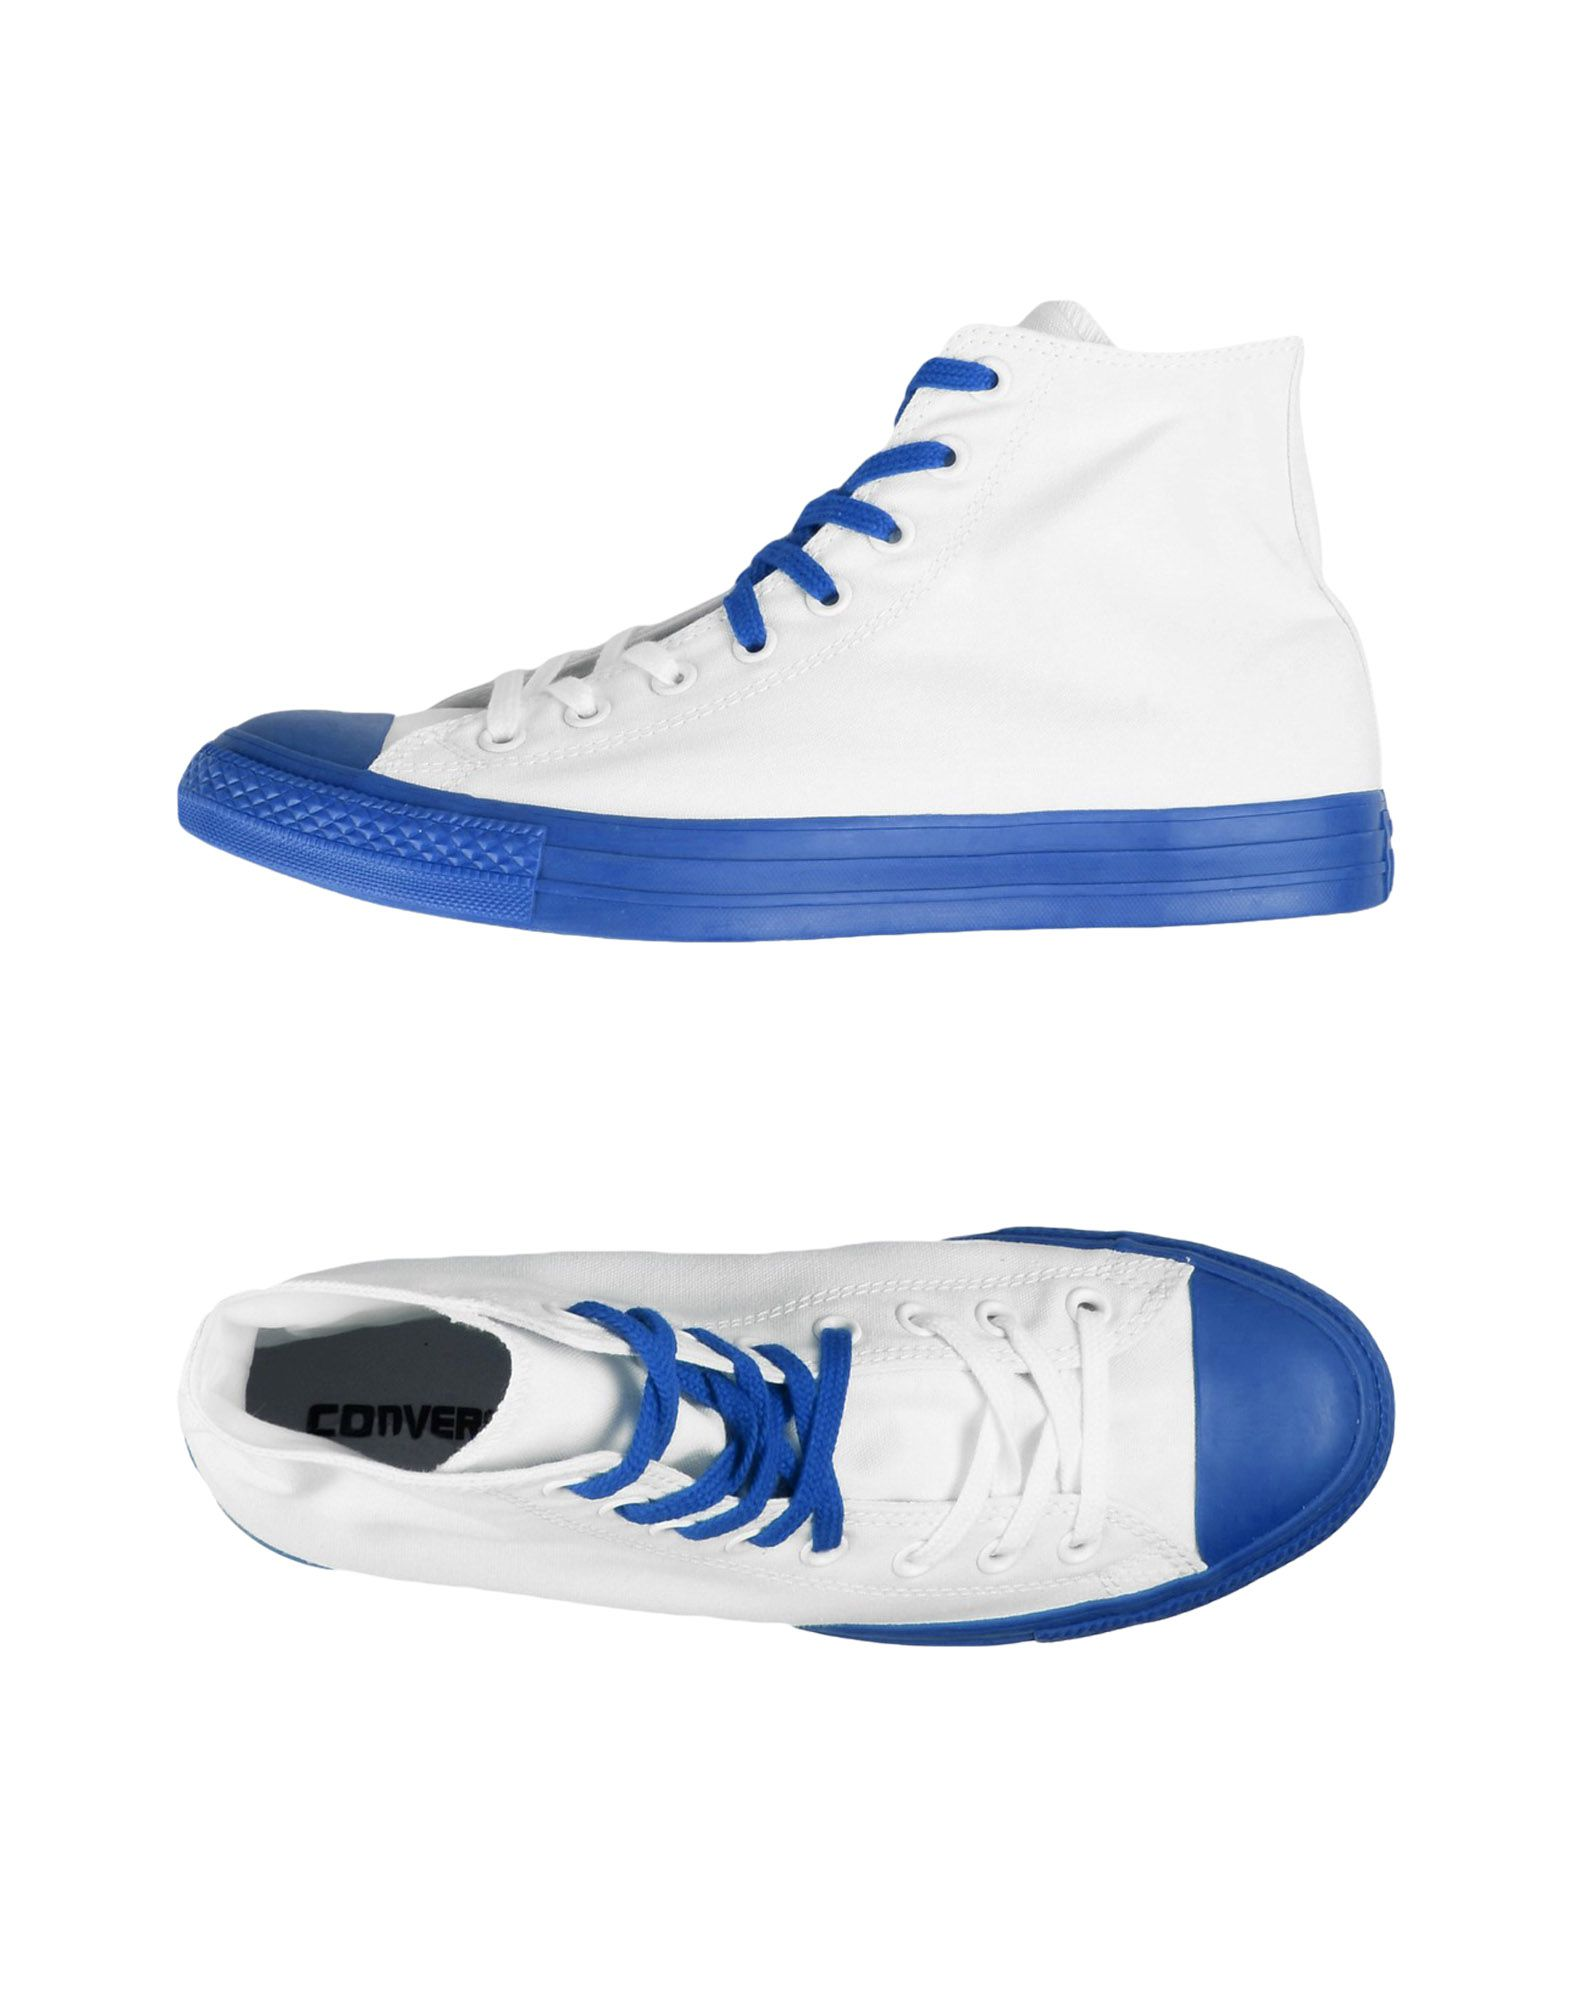 Baskets Converse All Star Ct As Hi Canvas Color Rubber - Homme - Baskets Converse All Star  Blanc Réduction de prix saisonnier, remise